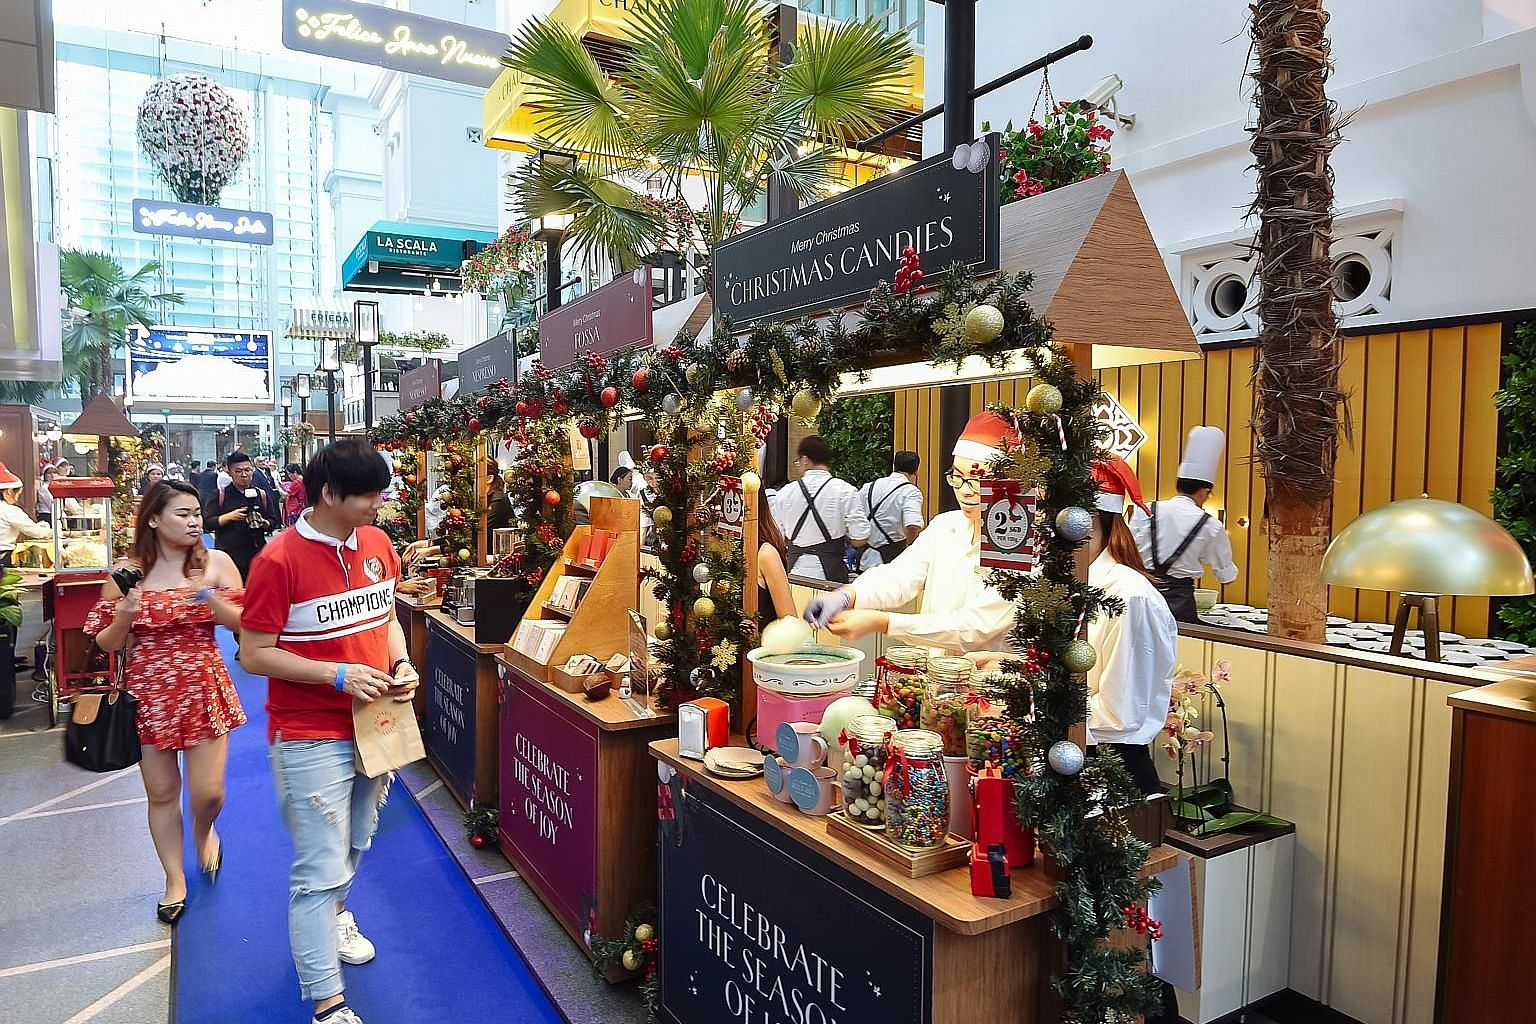 SPH subscribers can enjoy a 20 per cent discount when they buy anything from 20 of the more than 50 booths at the Capitol Kempinski Christmas Market. PHOTO: PERENNIAL REAL ESTATE HOLDINGS